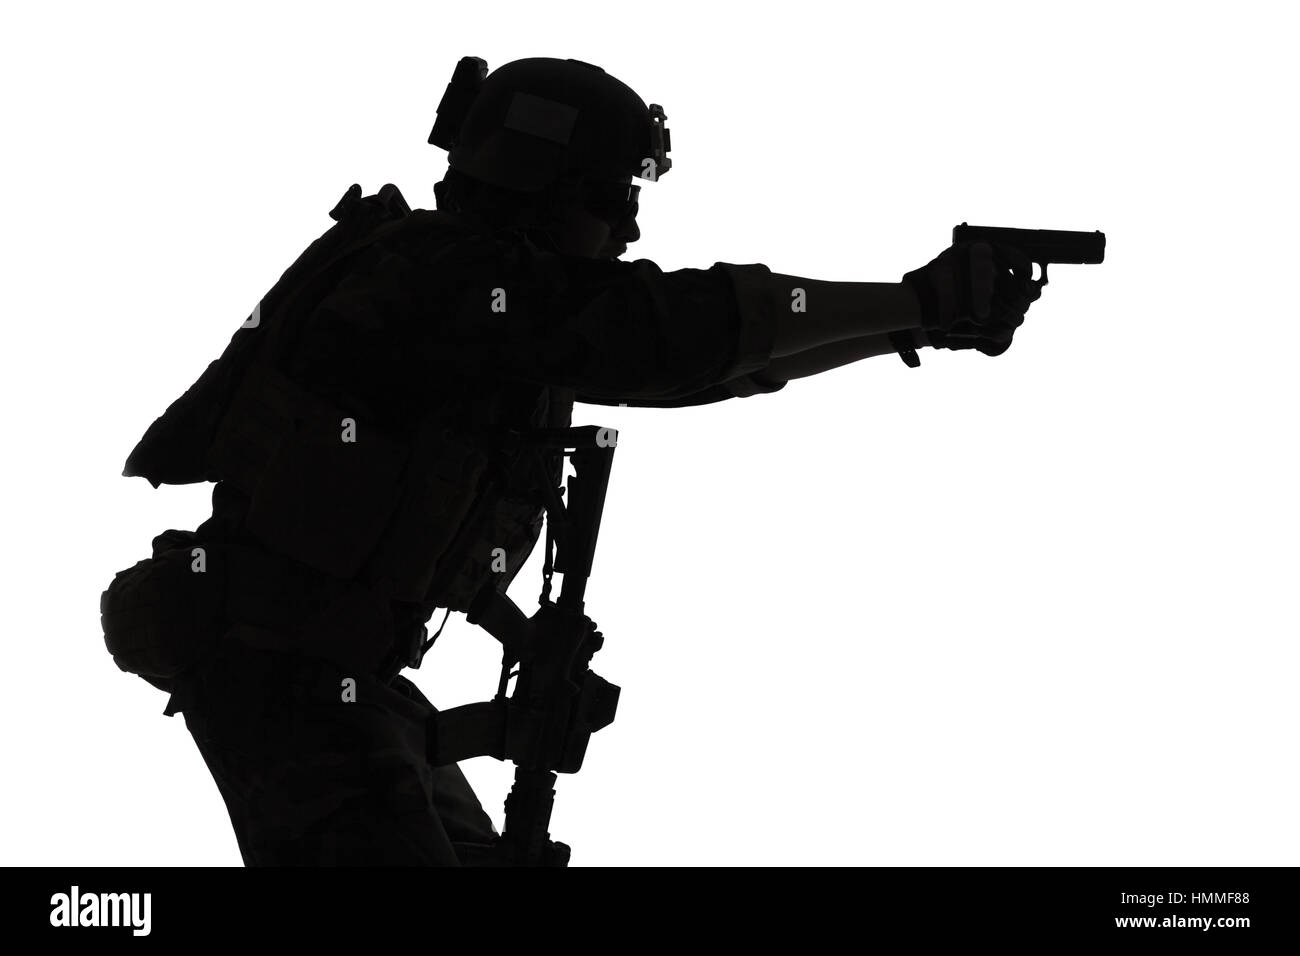 soldier with pistol - Stock Image